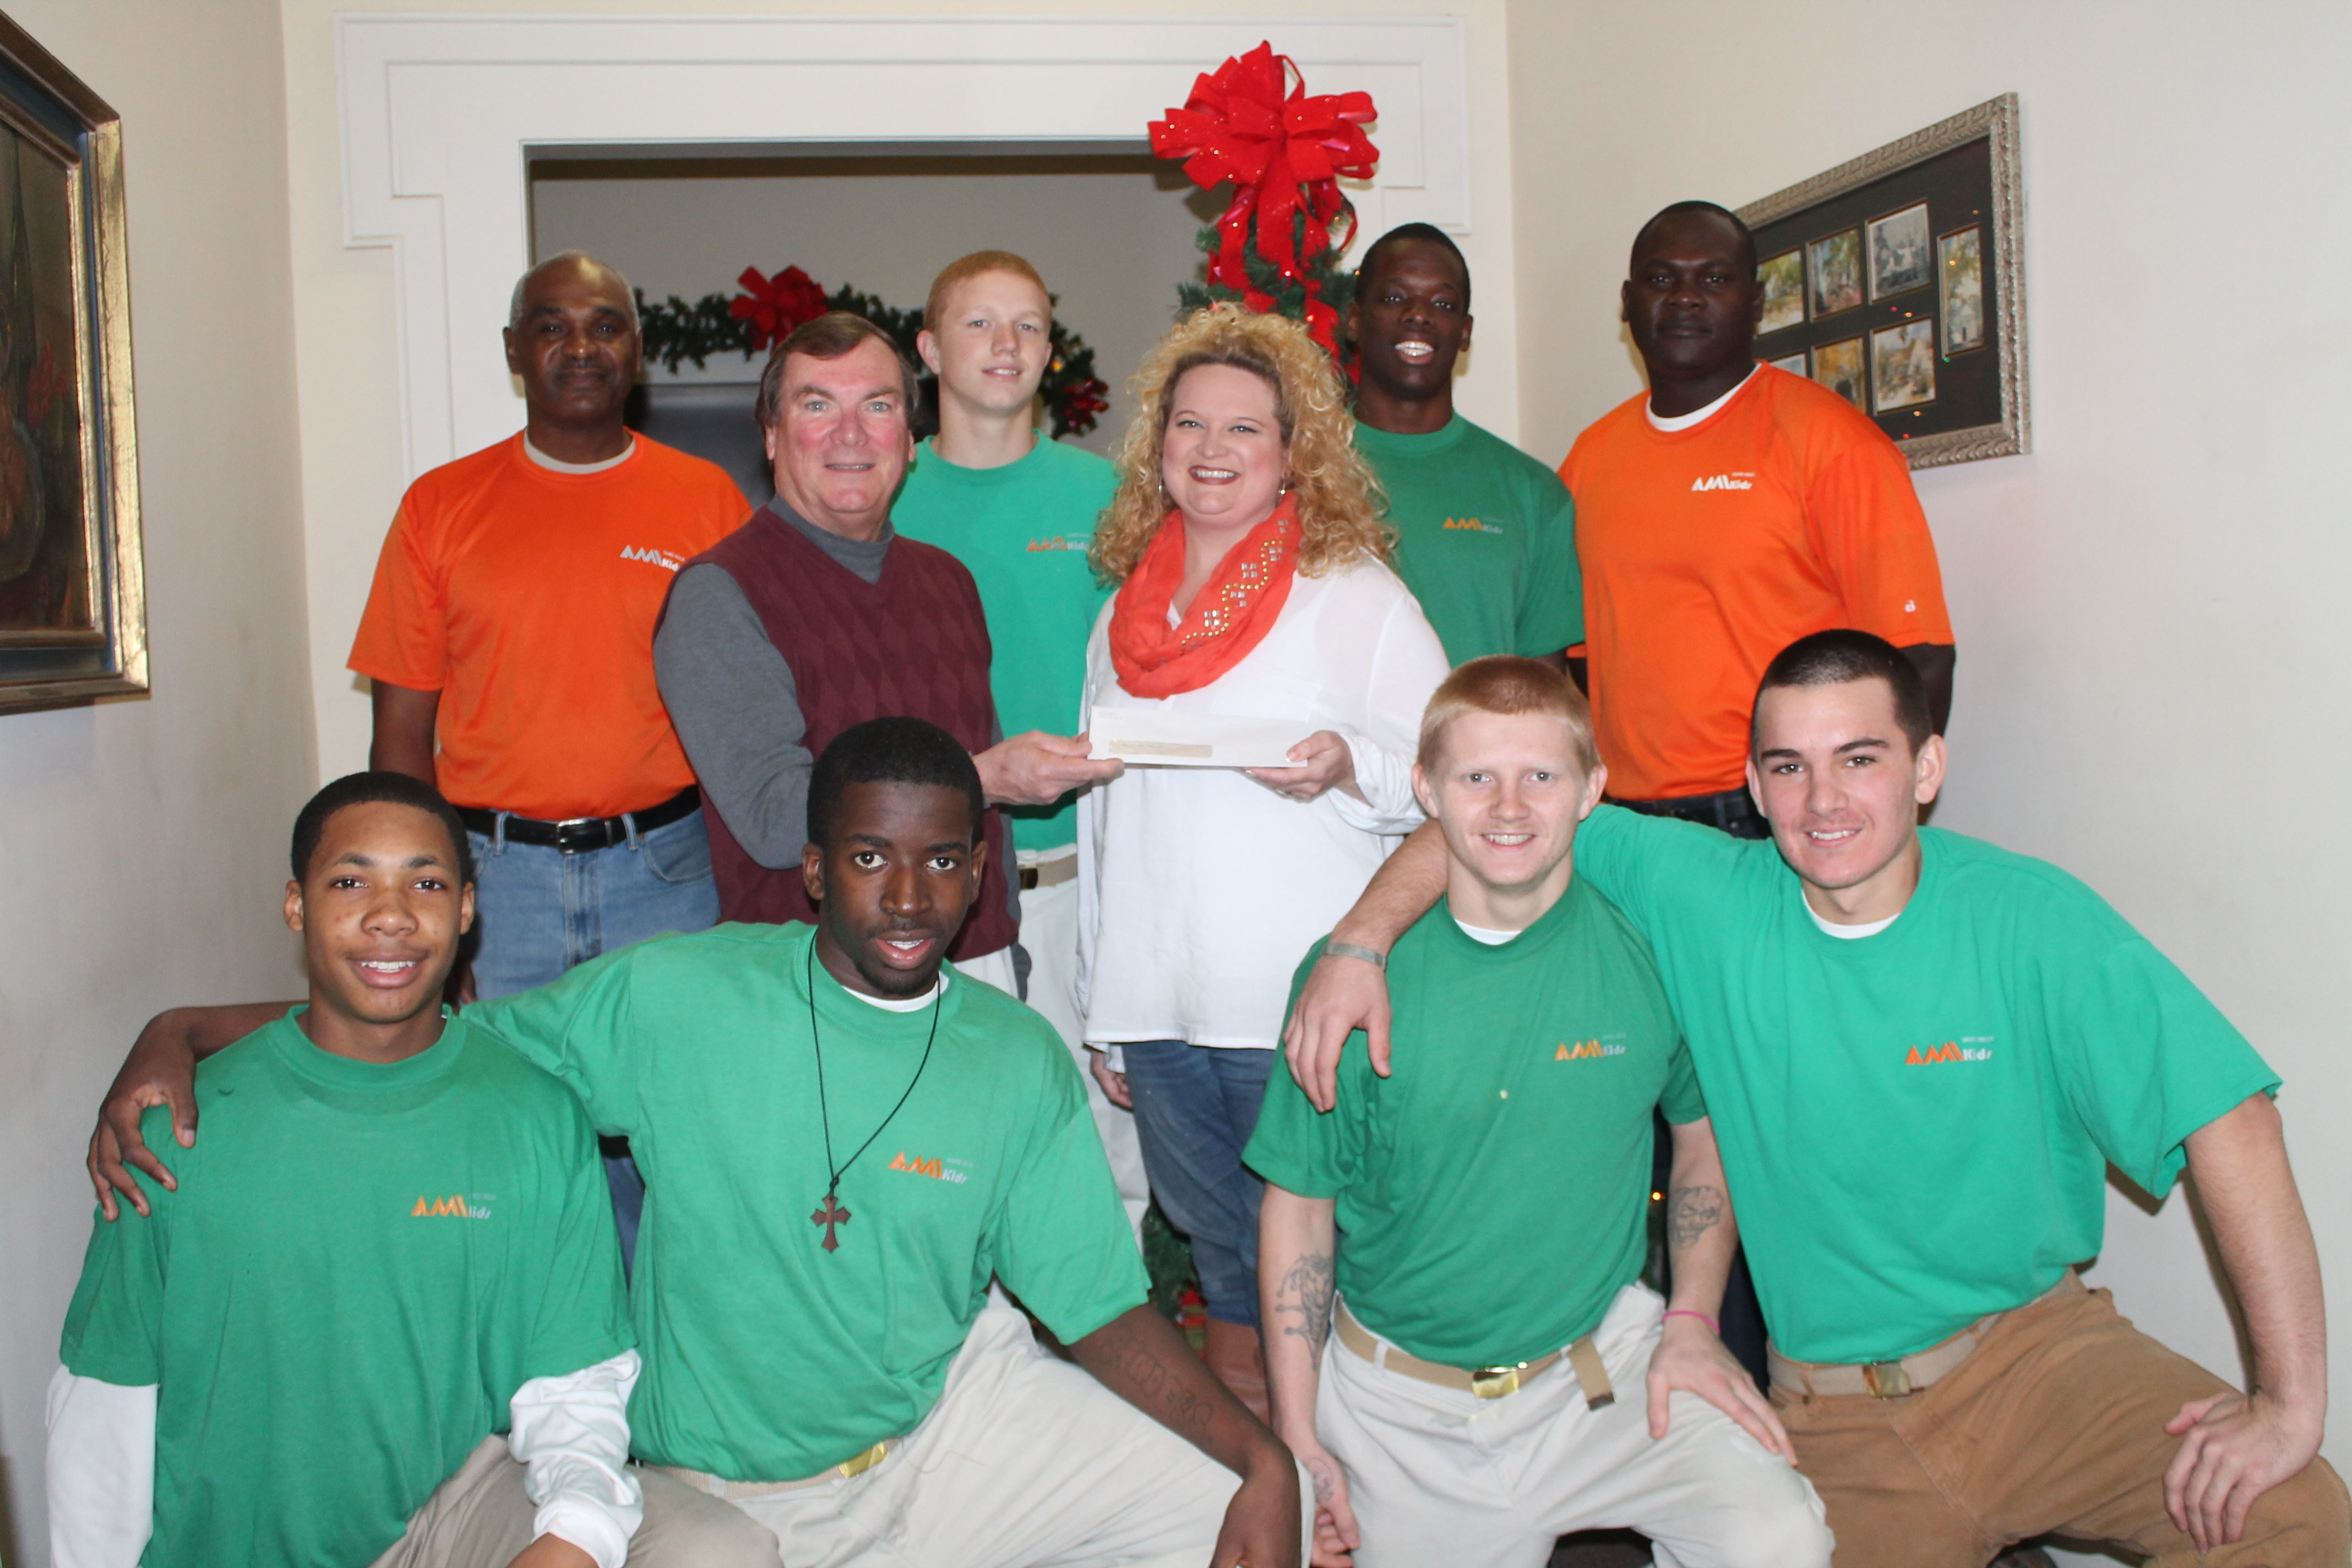 Christmas Parade float winners recognized | The Pee Dee Post